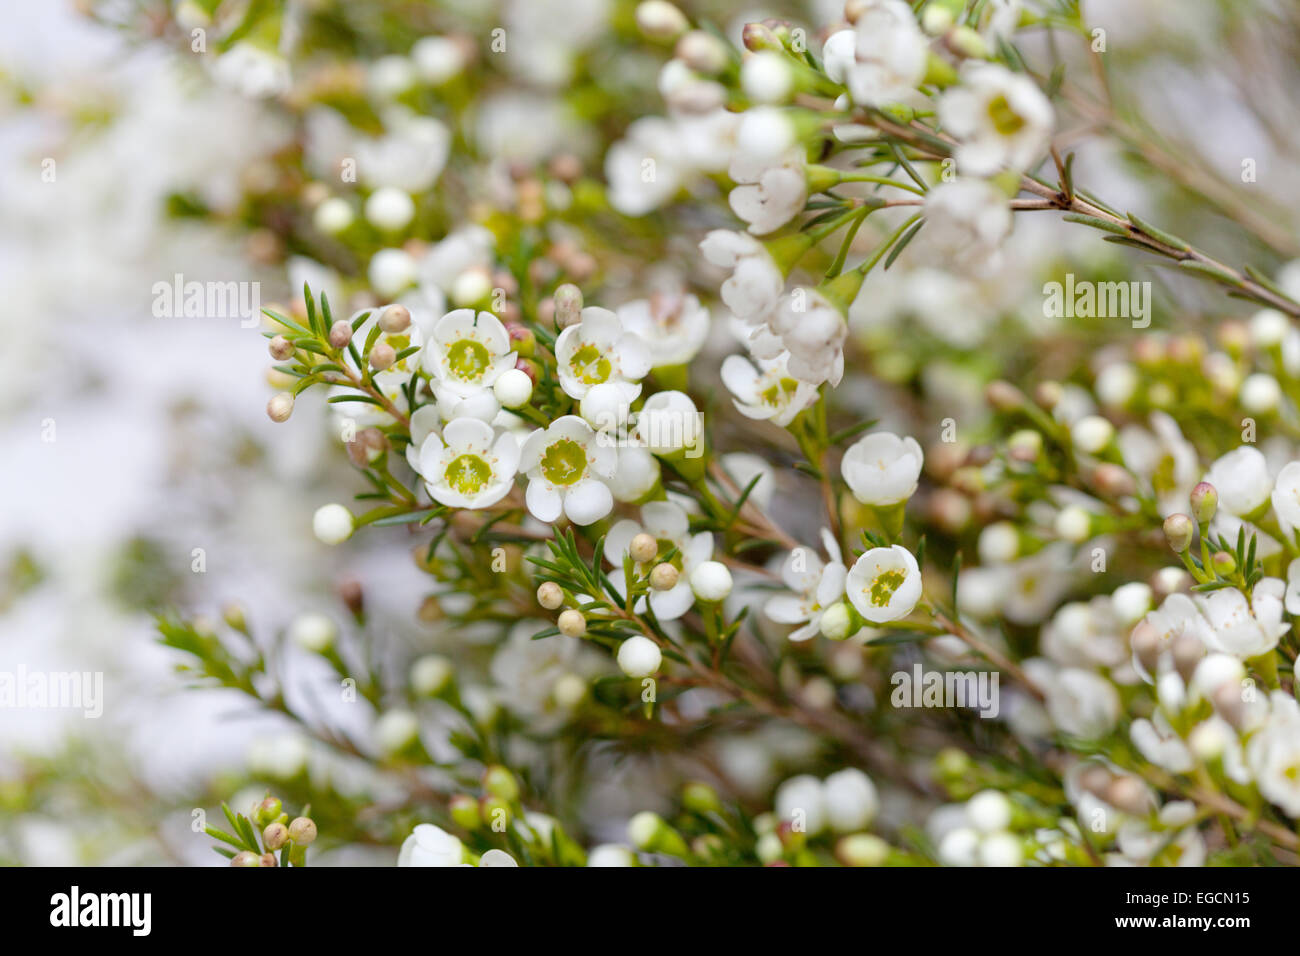 Chamelaucium Waxflower Stock Photos Chamelaucium Waxflower Stock